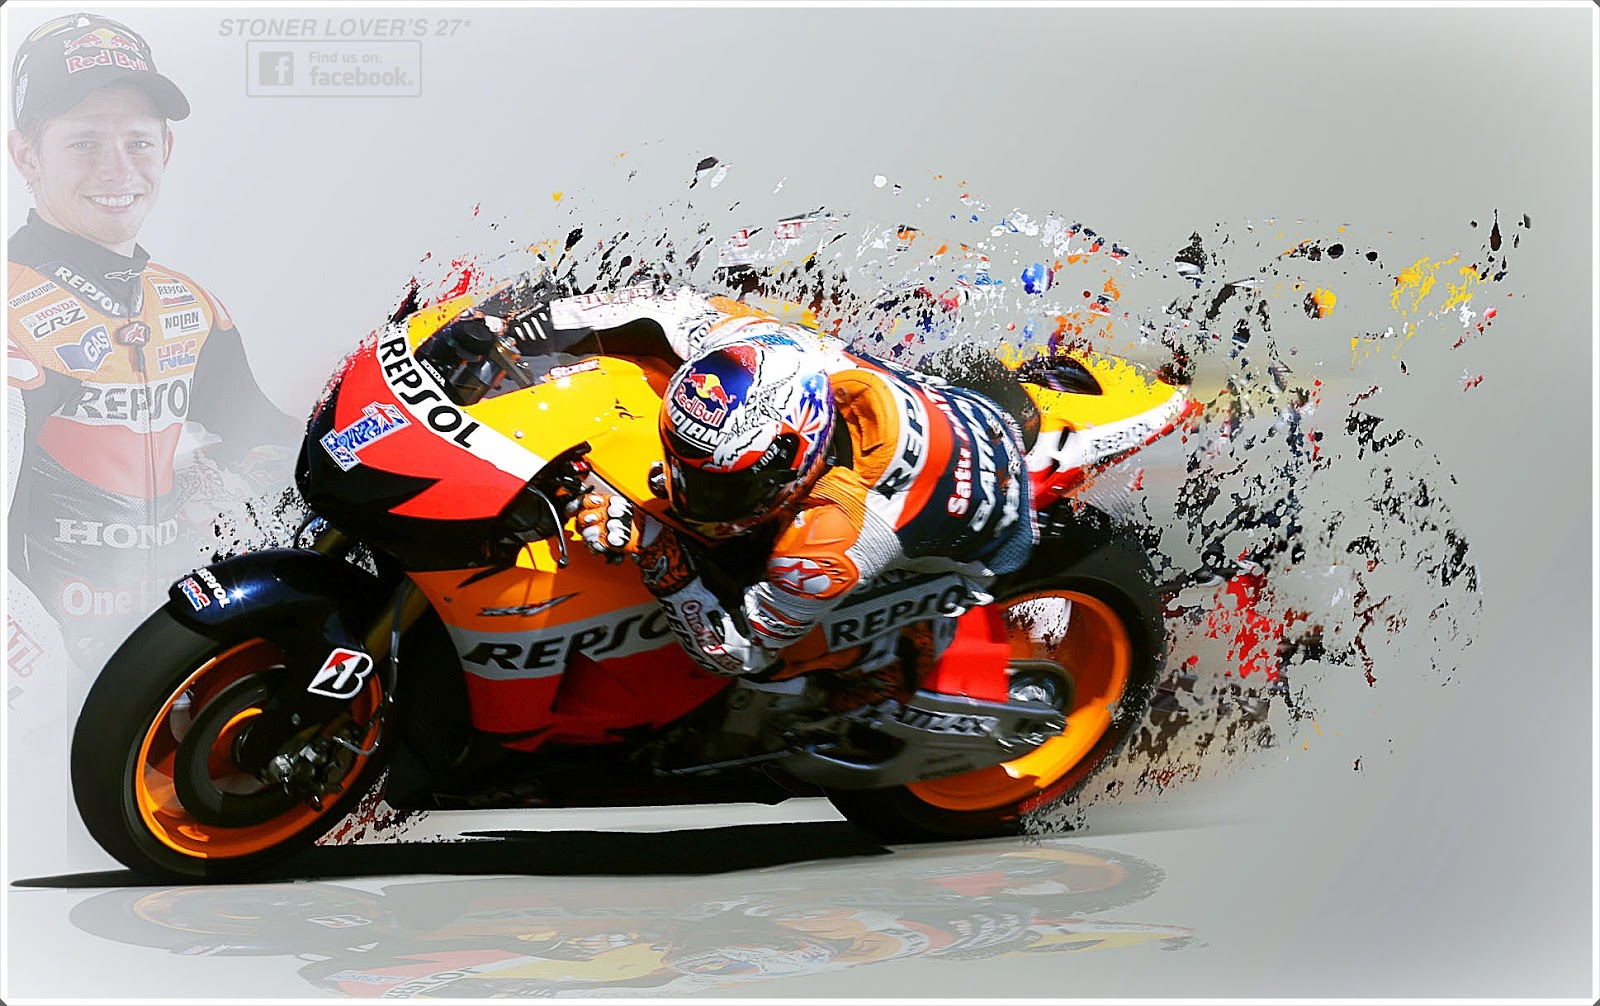 Redi Stoner Casey Stoner Wallpapers